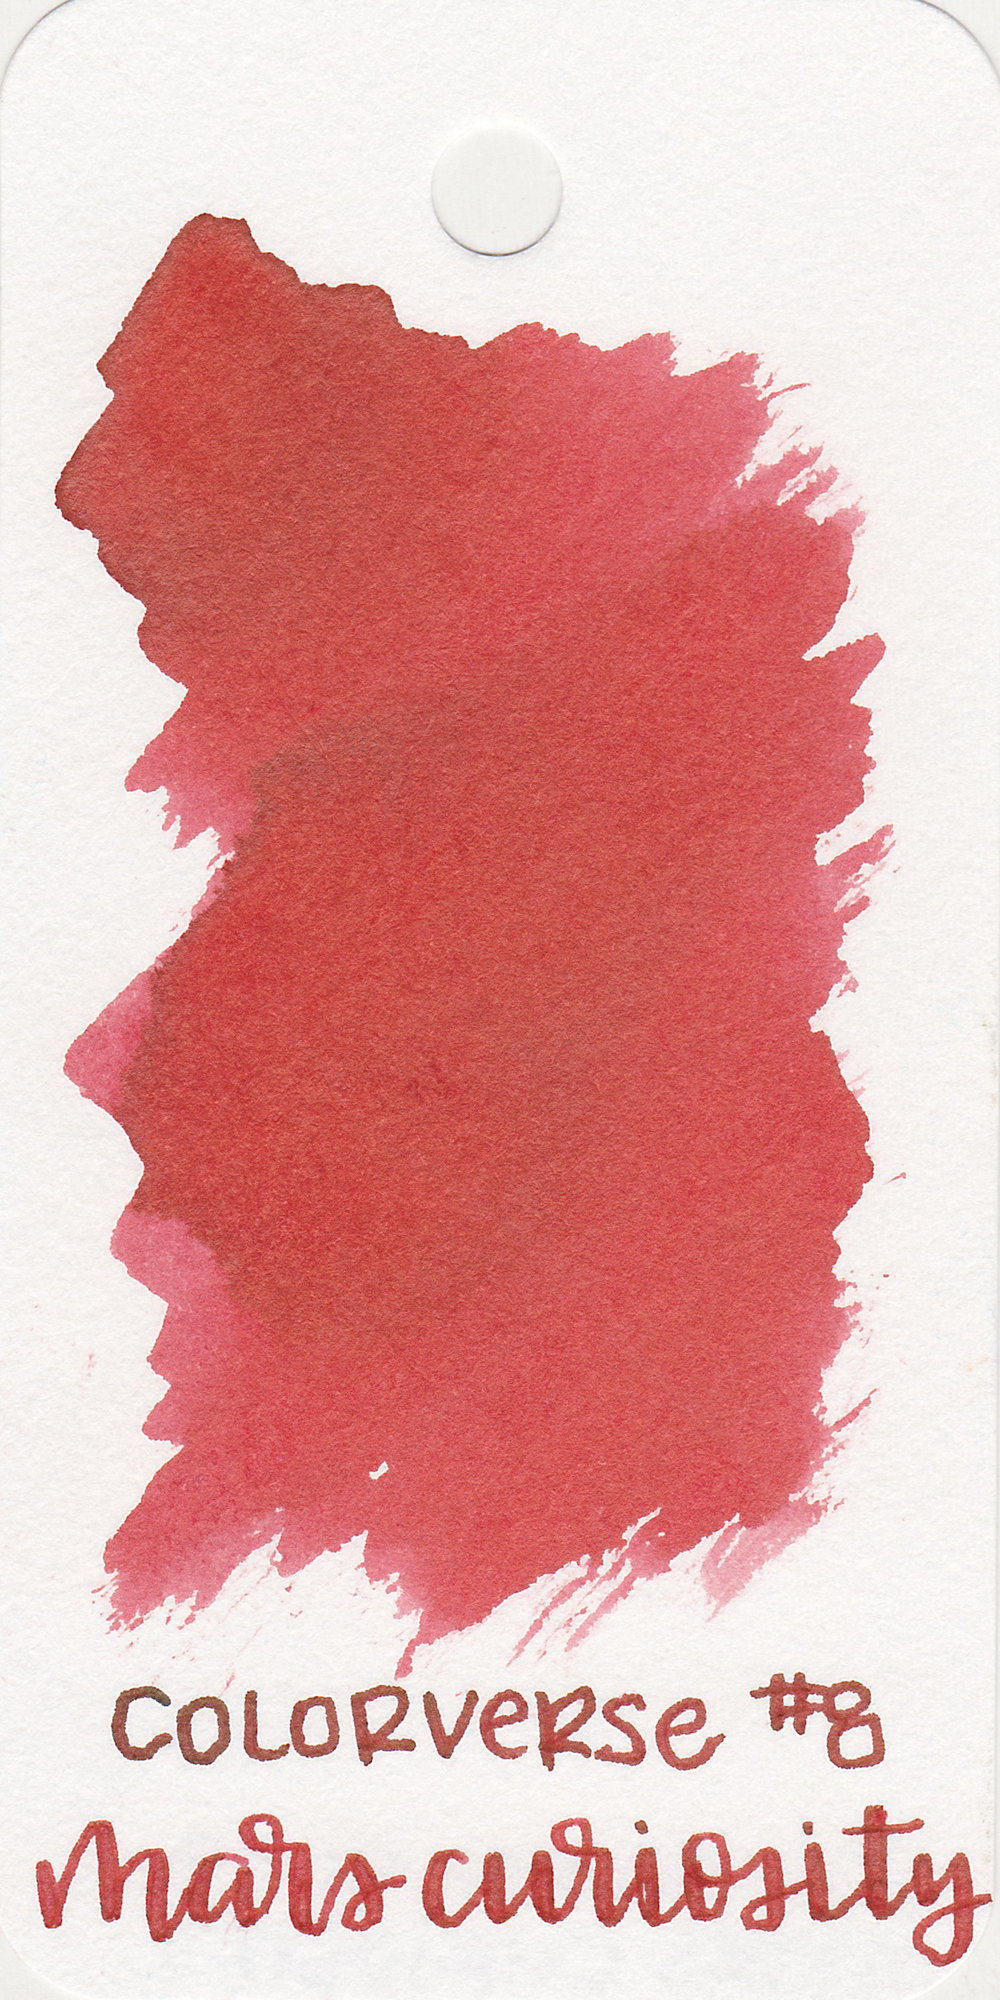 The color: - Mars Curiosity is a medium, slightly dusky red.